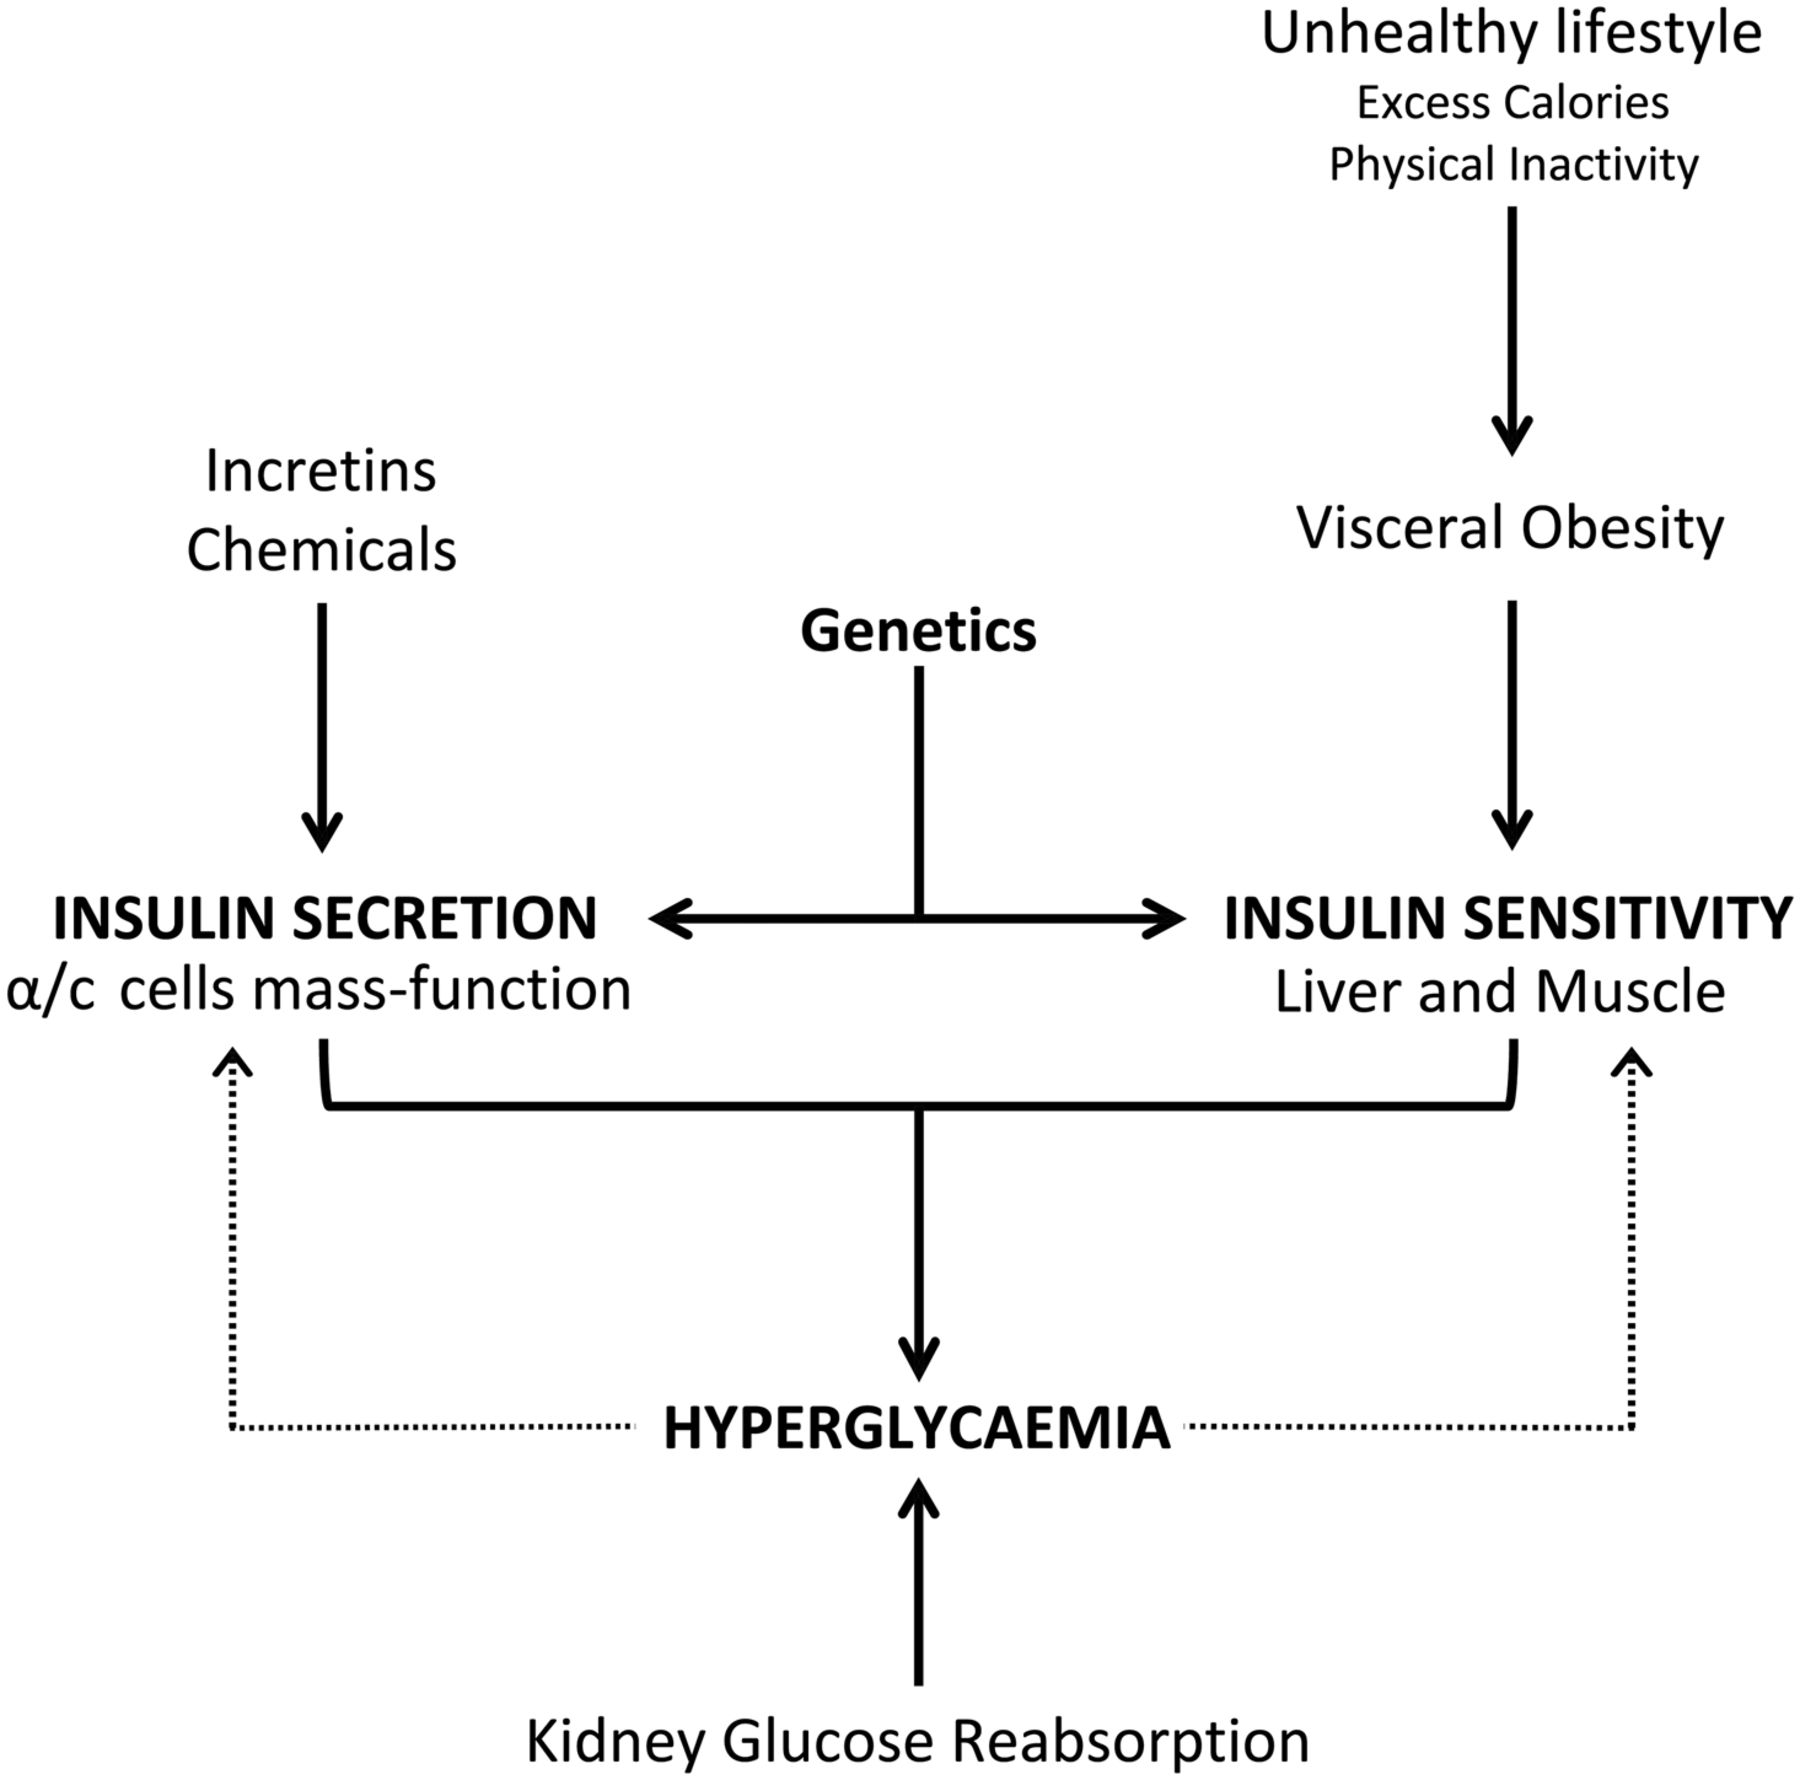 pathophysiology of type 2 diabetes Pathophysiology of type 2 diabetes mellitus type 2 diabetes mellitus is a heterogeneous disorder with varying prevalence among different ethnic groups in the united states the populations most affected are native americans, particularly in the desert southwest, hispanic-americans, and asian-americans ( 1 ).